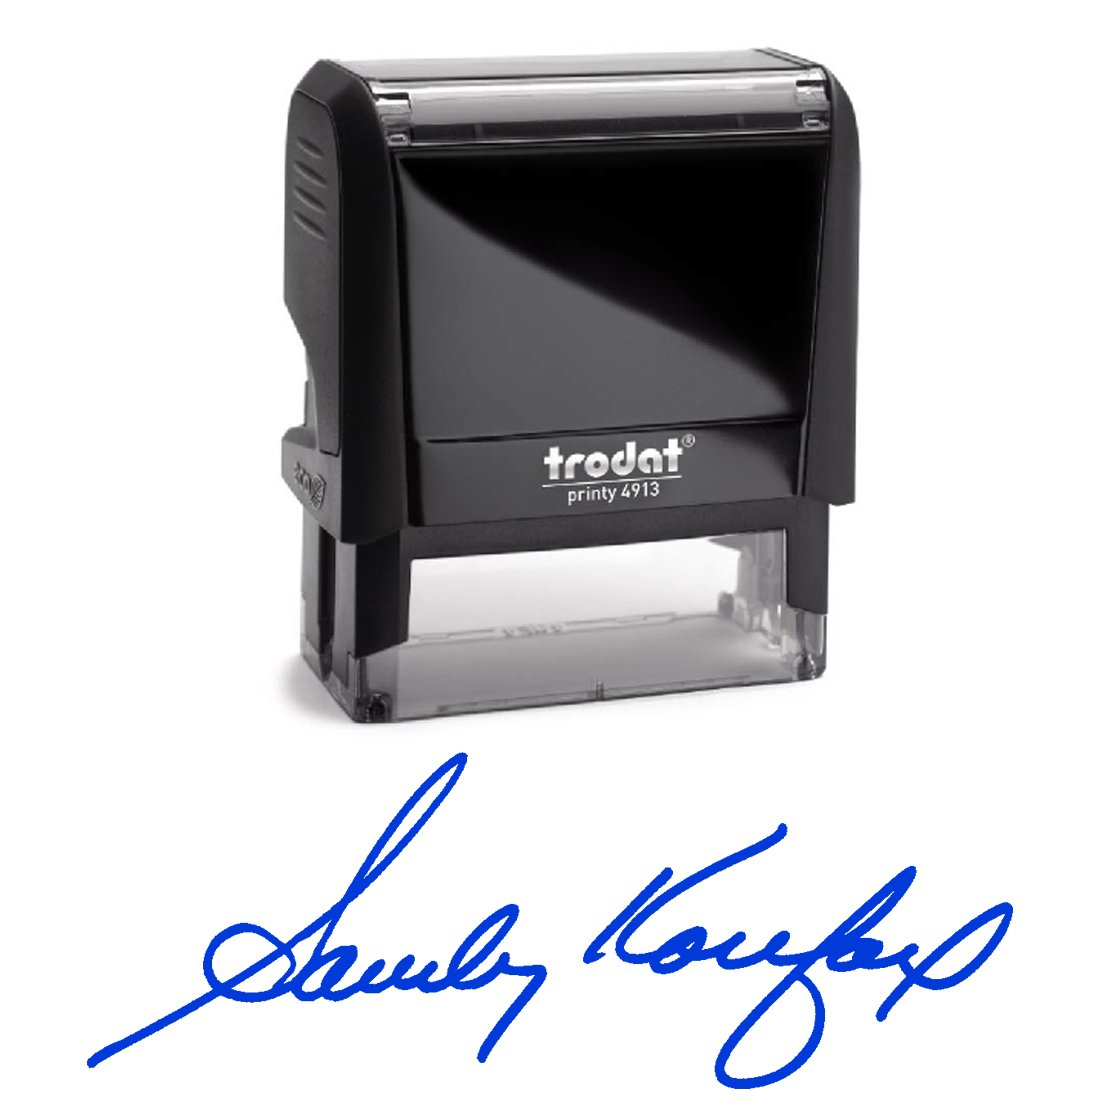 Blue Ink, Signature Stamp, Self Inking. Your Own Signature Customized into the Best Quality Stamper. Great For Regular Signing. Color Options Available. Sign Off Checks, Contracts, Certificates